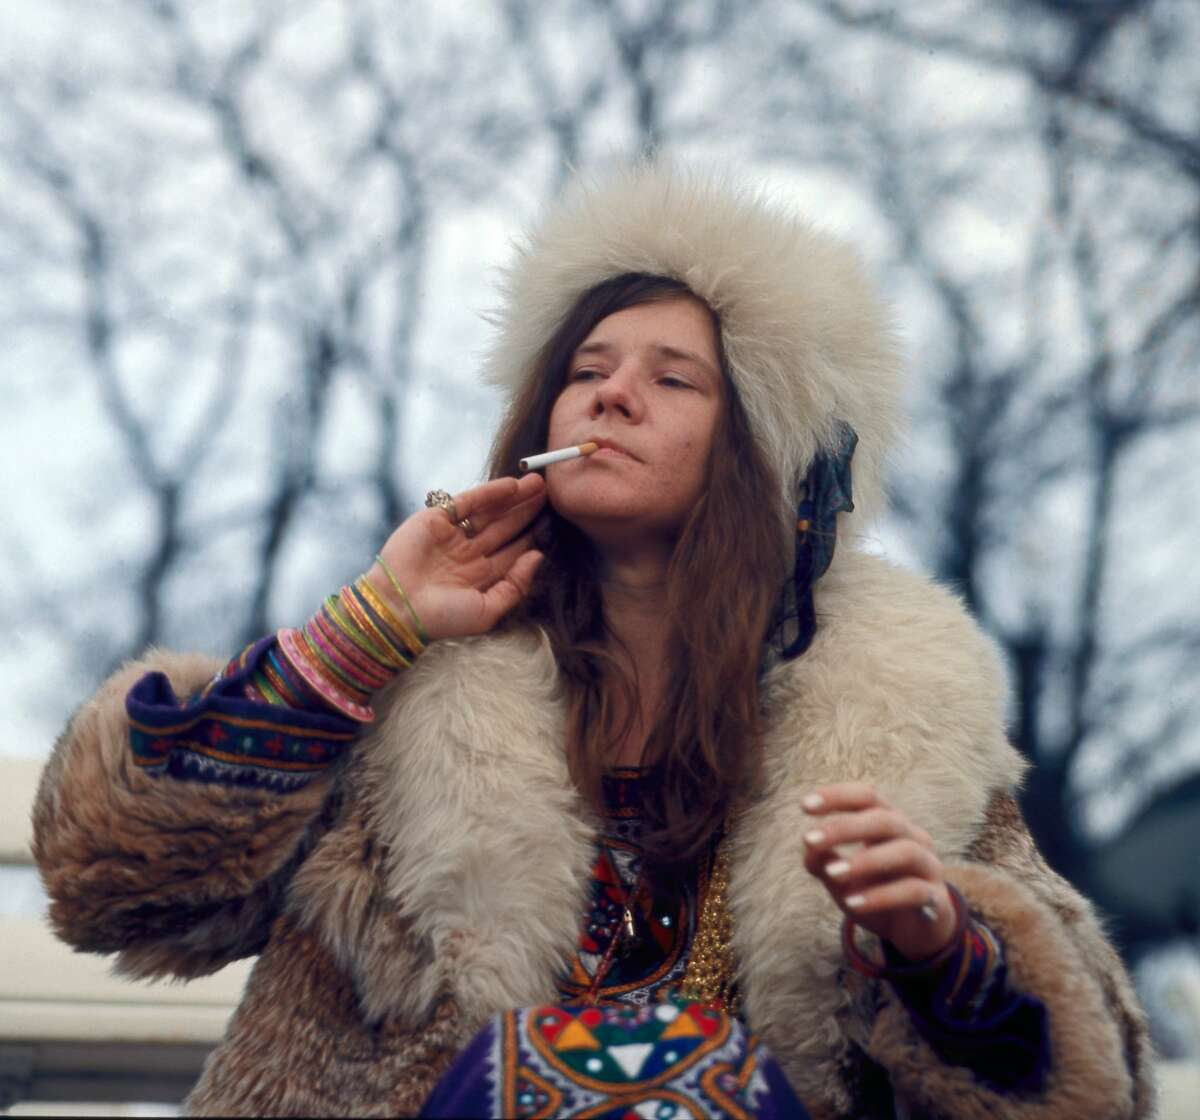 Janis Joplin: Little Girl Blue IMDB rating: 7.4/10 Rotten Tomatoes rating: 91% Summary: Little Girl Blue examines Joplin's life and career, including her battle with substance abuse and rise to stardom in the 1960s.